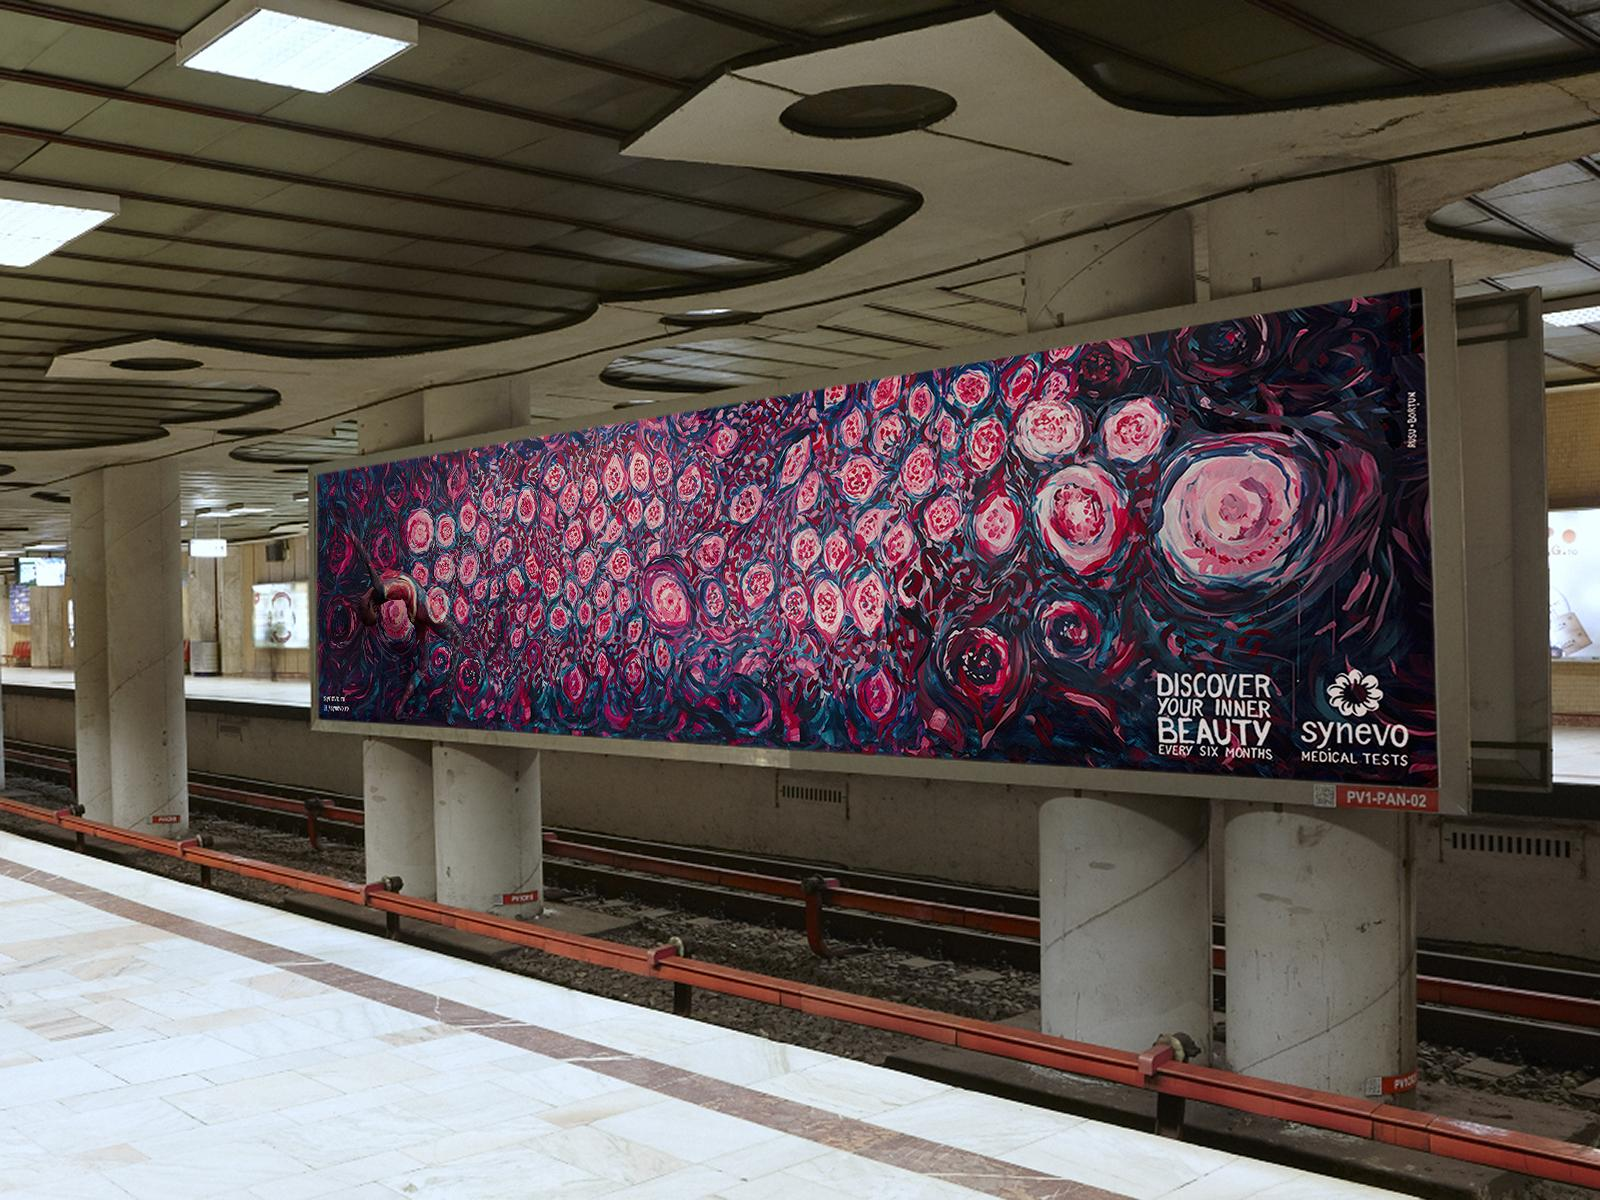 Synevo Medical Labs Outdoor Ad -  The Inner Beauty Exhibition, 5